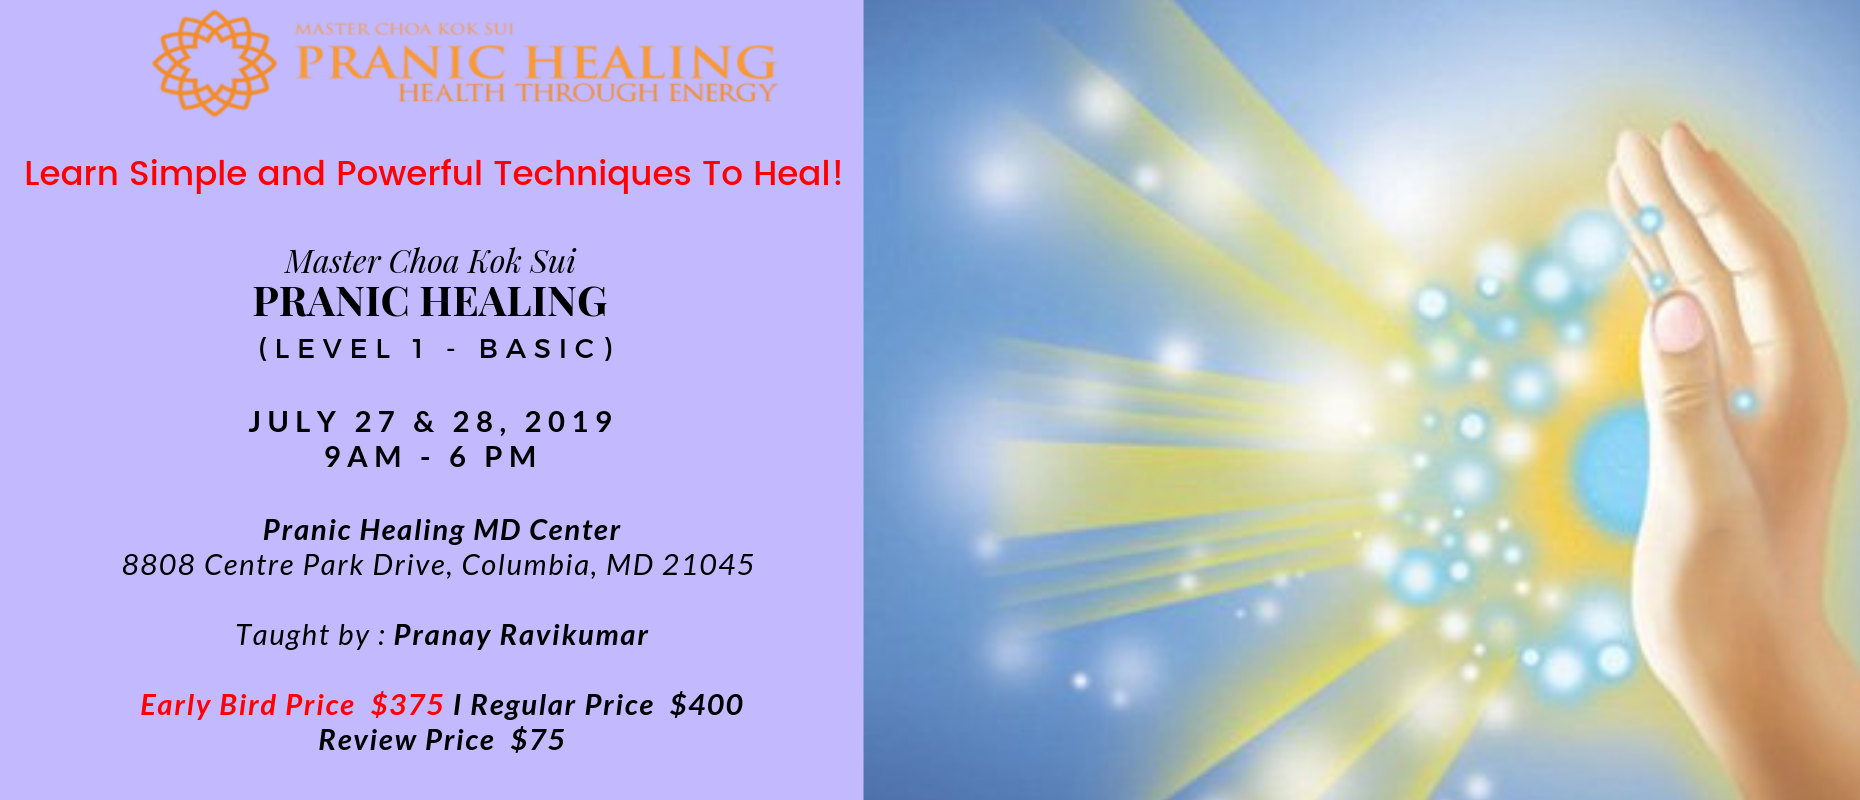 Pranic Healing Level 1 Course